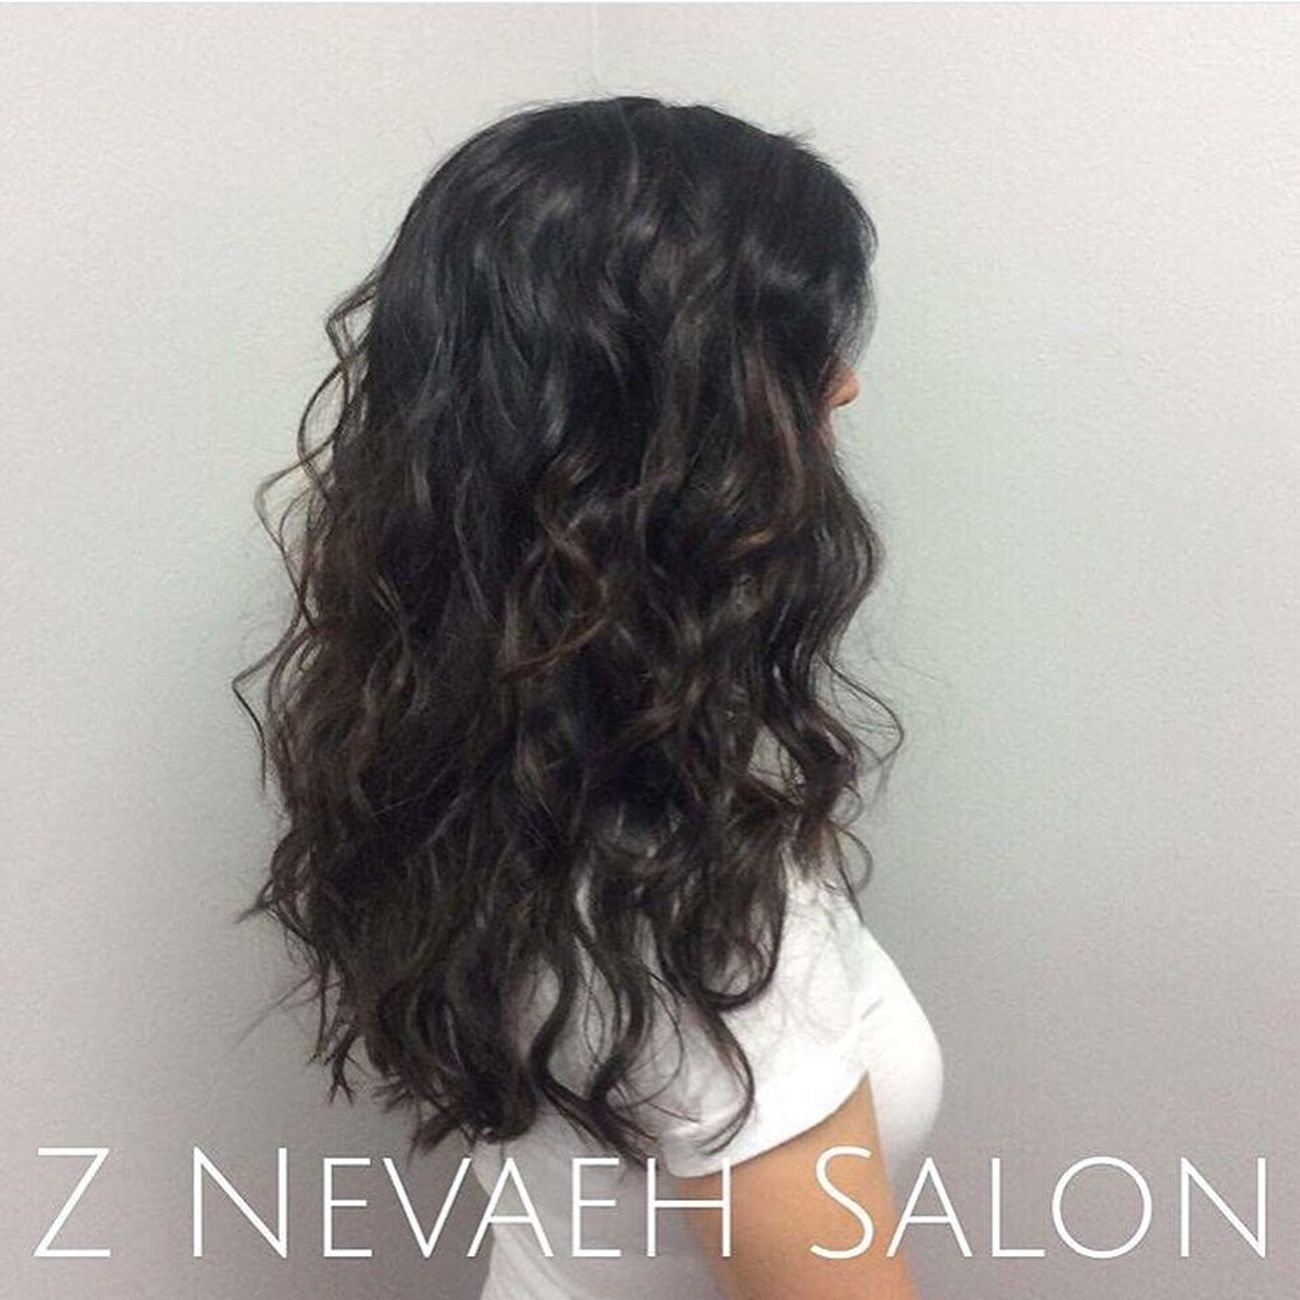 Waves For Days And French Layers @znevaehsalon @lorealprous Check This Out Lorealprofessionnelsalon Knoxvillesalon Z Nevaeh Salon L'Oreal Professionnel Hairtrends Fashion #style #stylish #love #TagsForLikes #me #cute #photooftheday #nails #hair #beauty #beautiful #instagood #instafashion # Fashion Hair Eye4photography # Photooftheday Hairstyle Teamznevaeh @znevaehsalon Hair Salon Tecni.art Pro Fiber Color Specialist .#curls Salonlife Tecniart @znevaehsalon @lorealprofessionnel Longhair